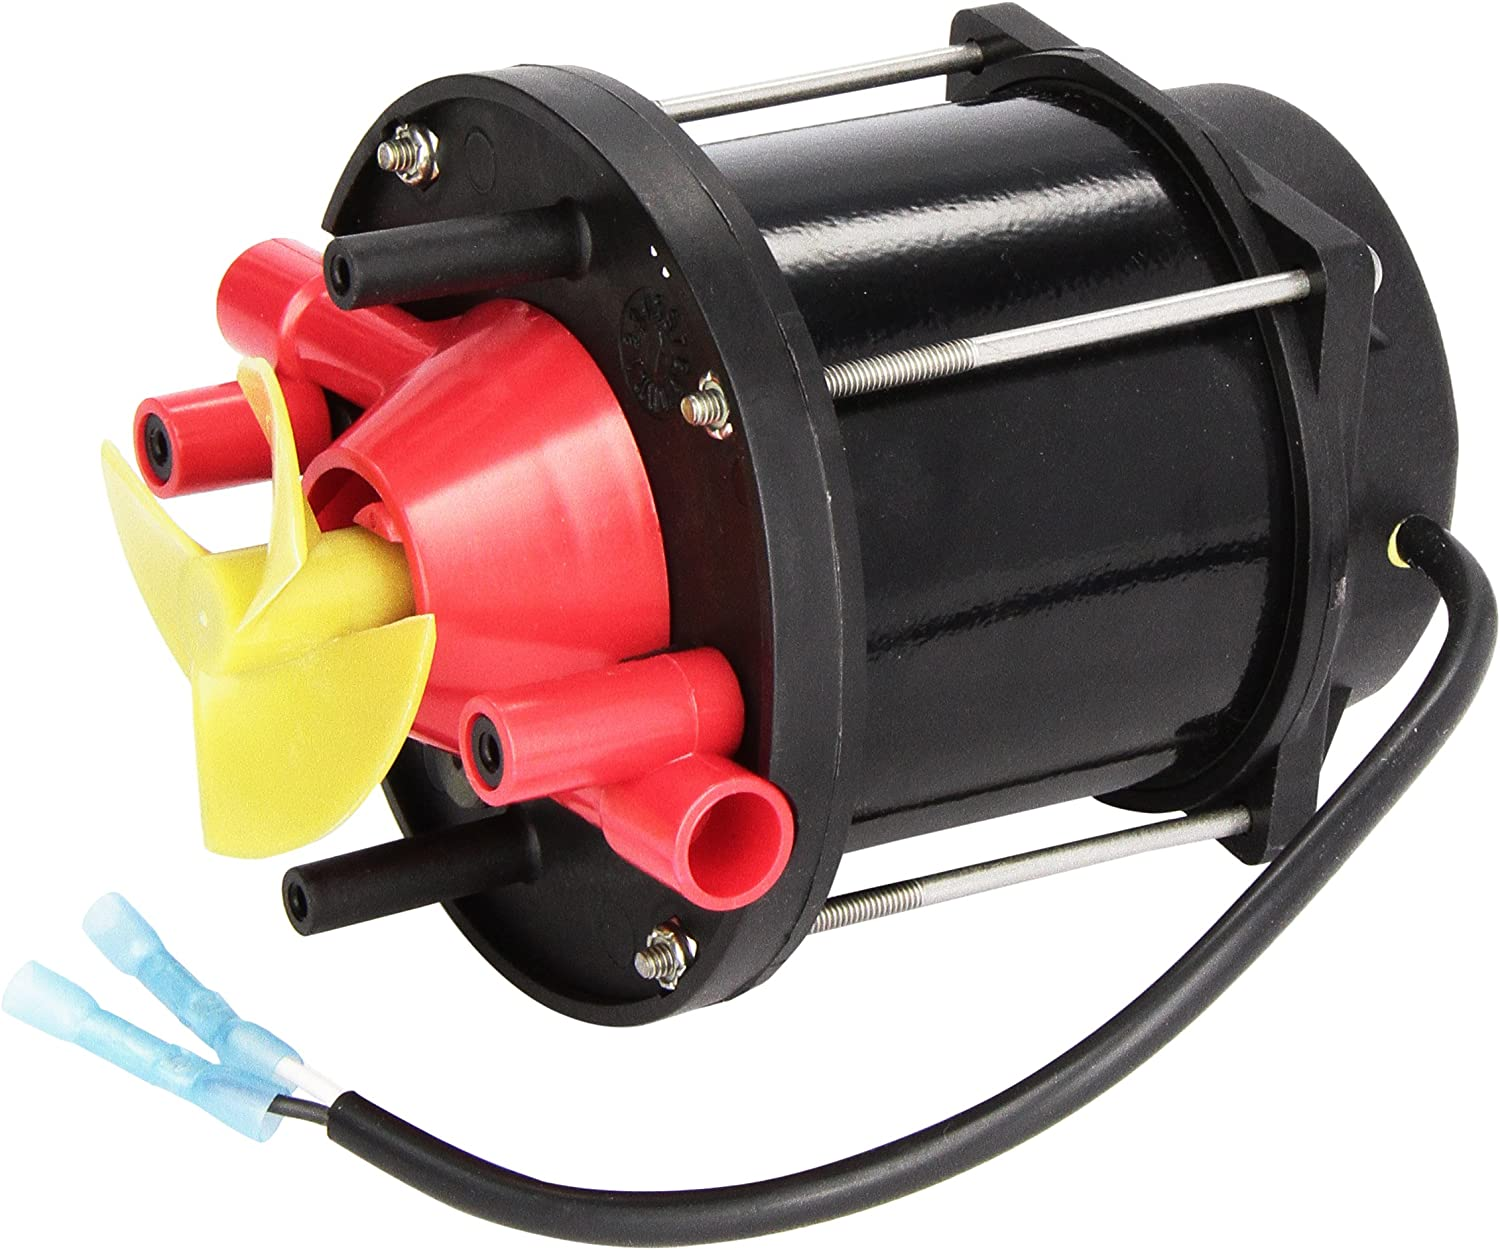 Pentair P12141 Pump Motor Assembly 40% OFF Cheap Sale Replacement Limited time for free shipping Pro Krauly Kreepy